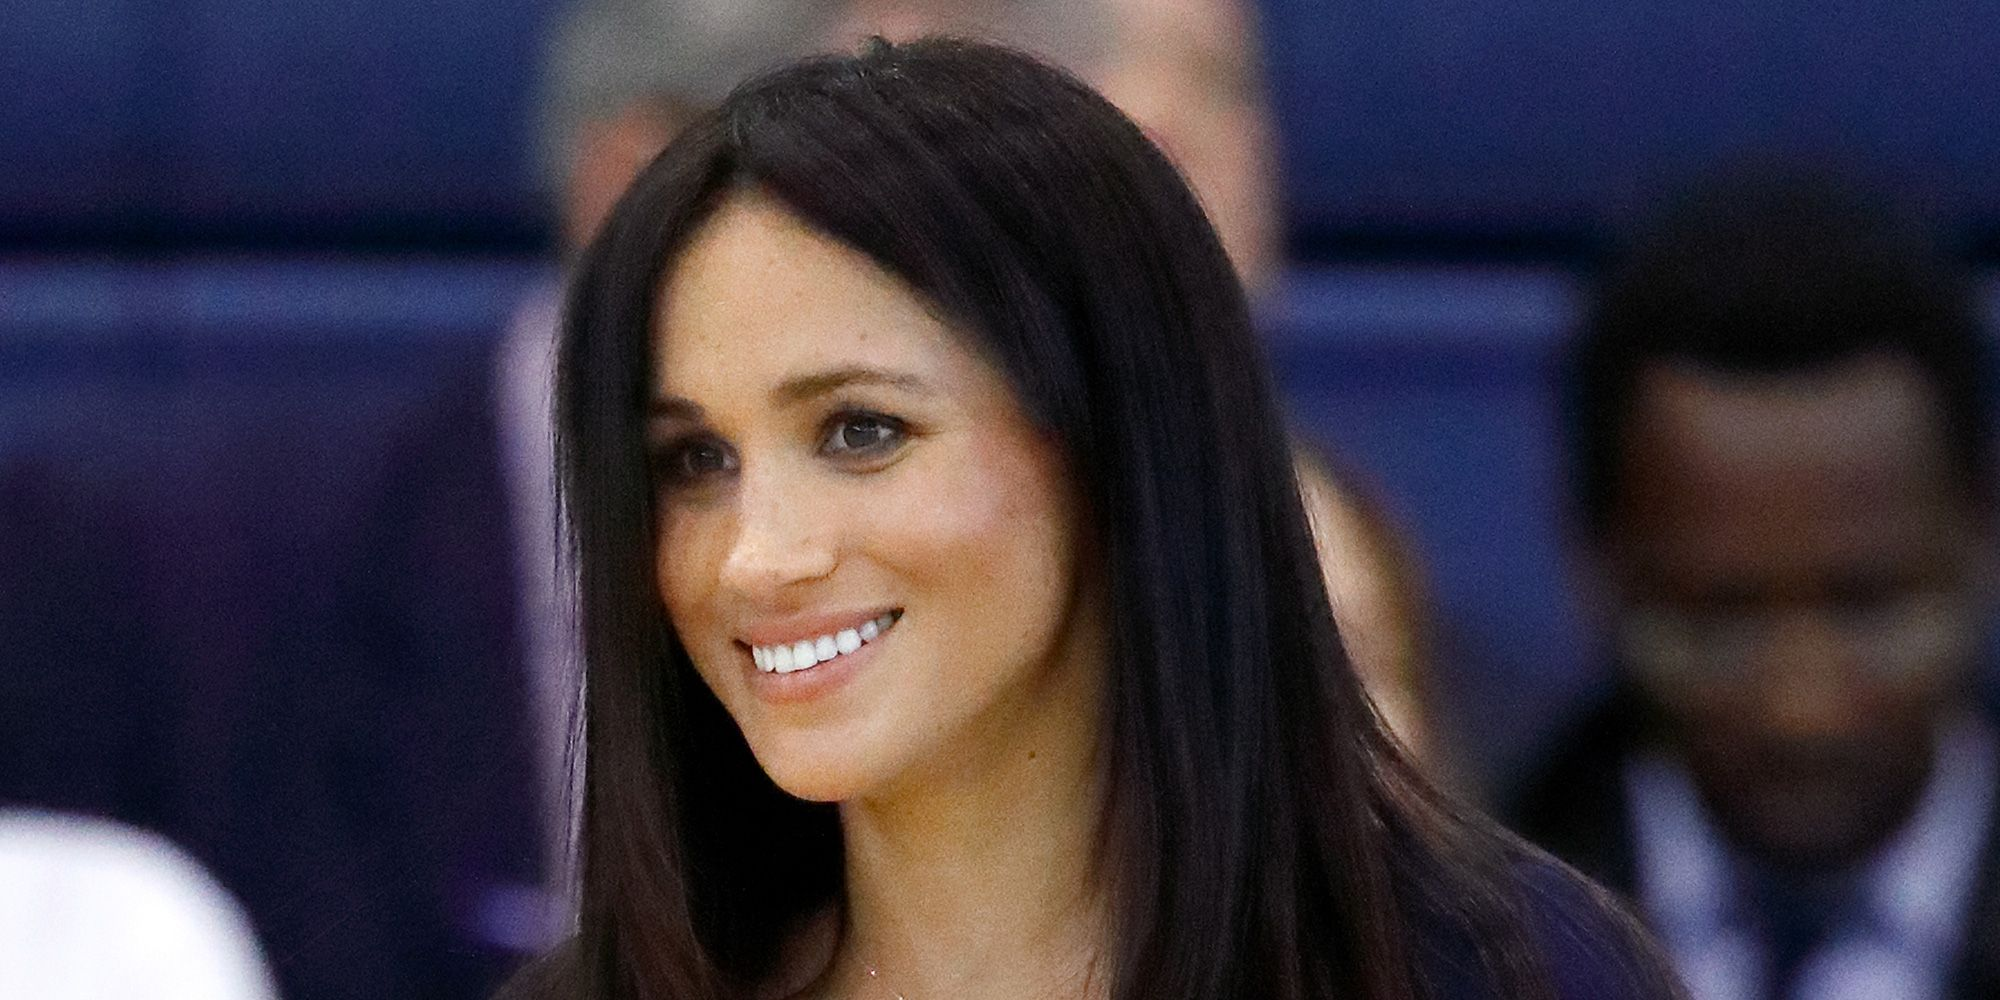 Why People Think Meghan Markles New Hair Is A Hint Shes Pregnant